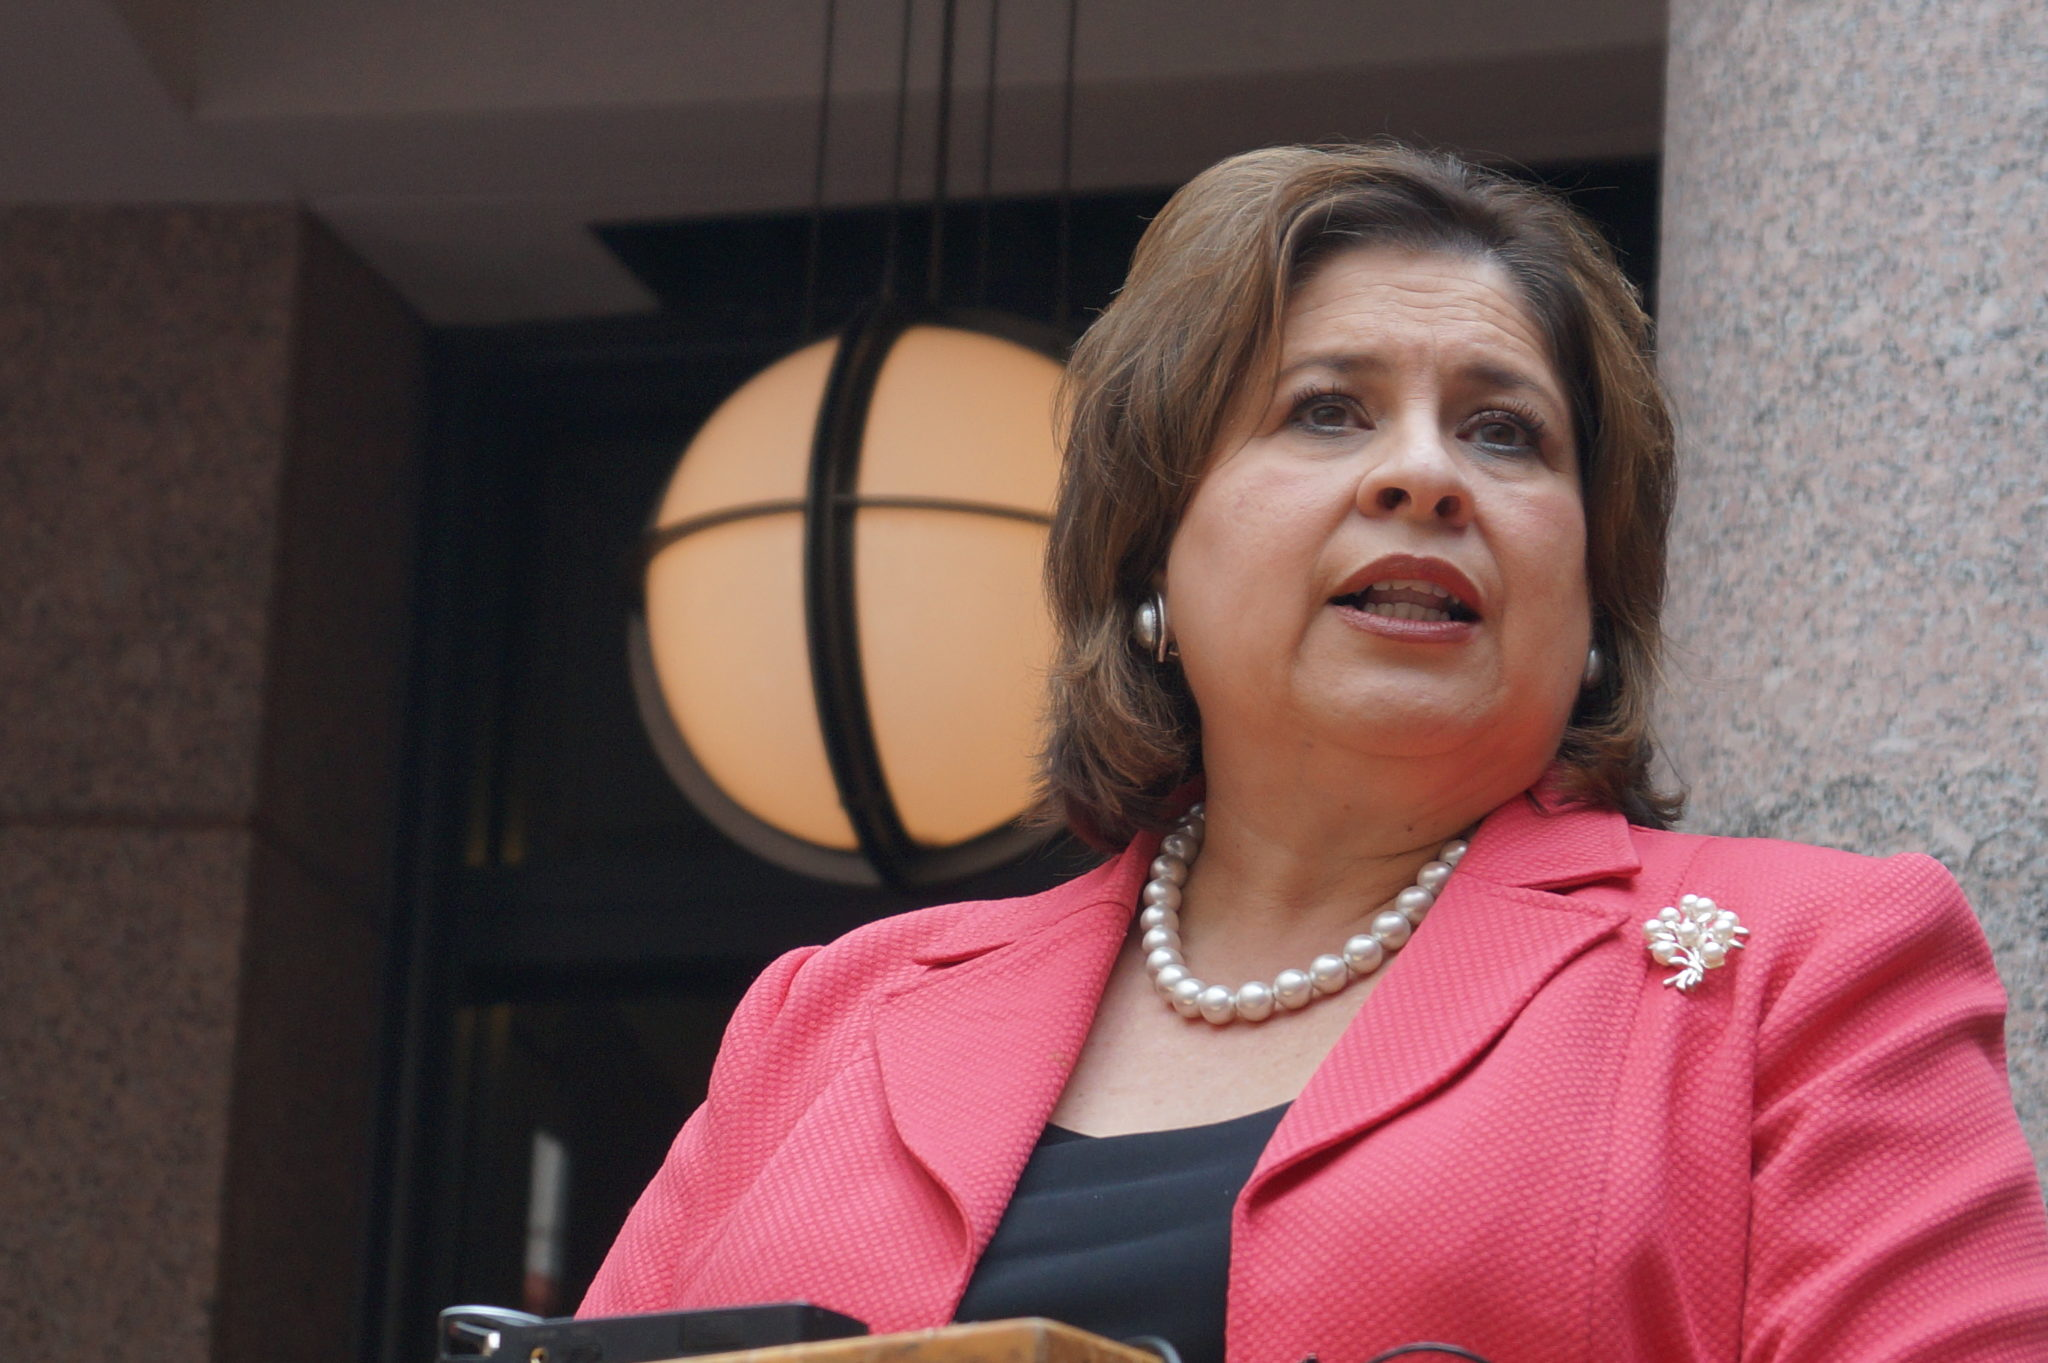 Leticia Van De Putte speaks at the Texas' capitol's outdoor rotunda at a press conference on the state's women's health programs, February 20, 2014.